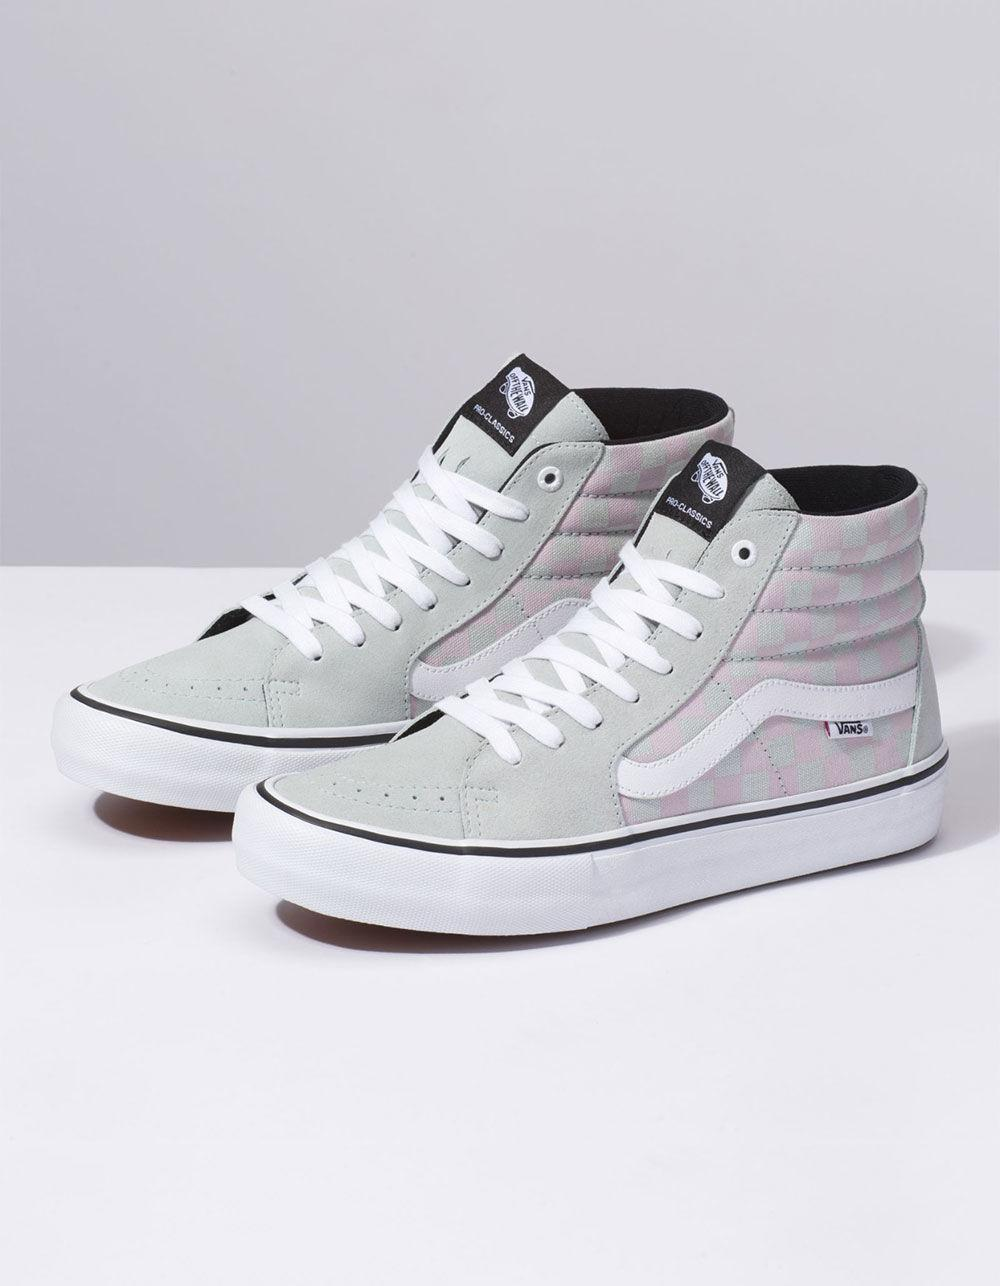 ff2aa06f4a9 Lyst - Vans Checkerboard Sk8-hi Pro Smoke   Violet Ice Shoes for Men